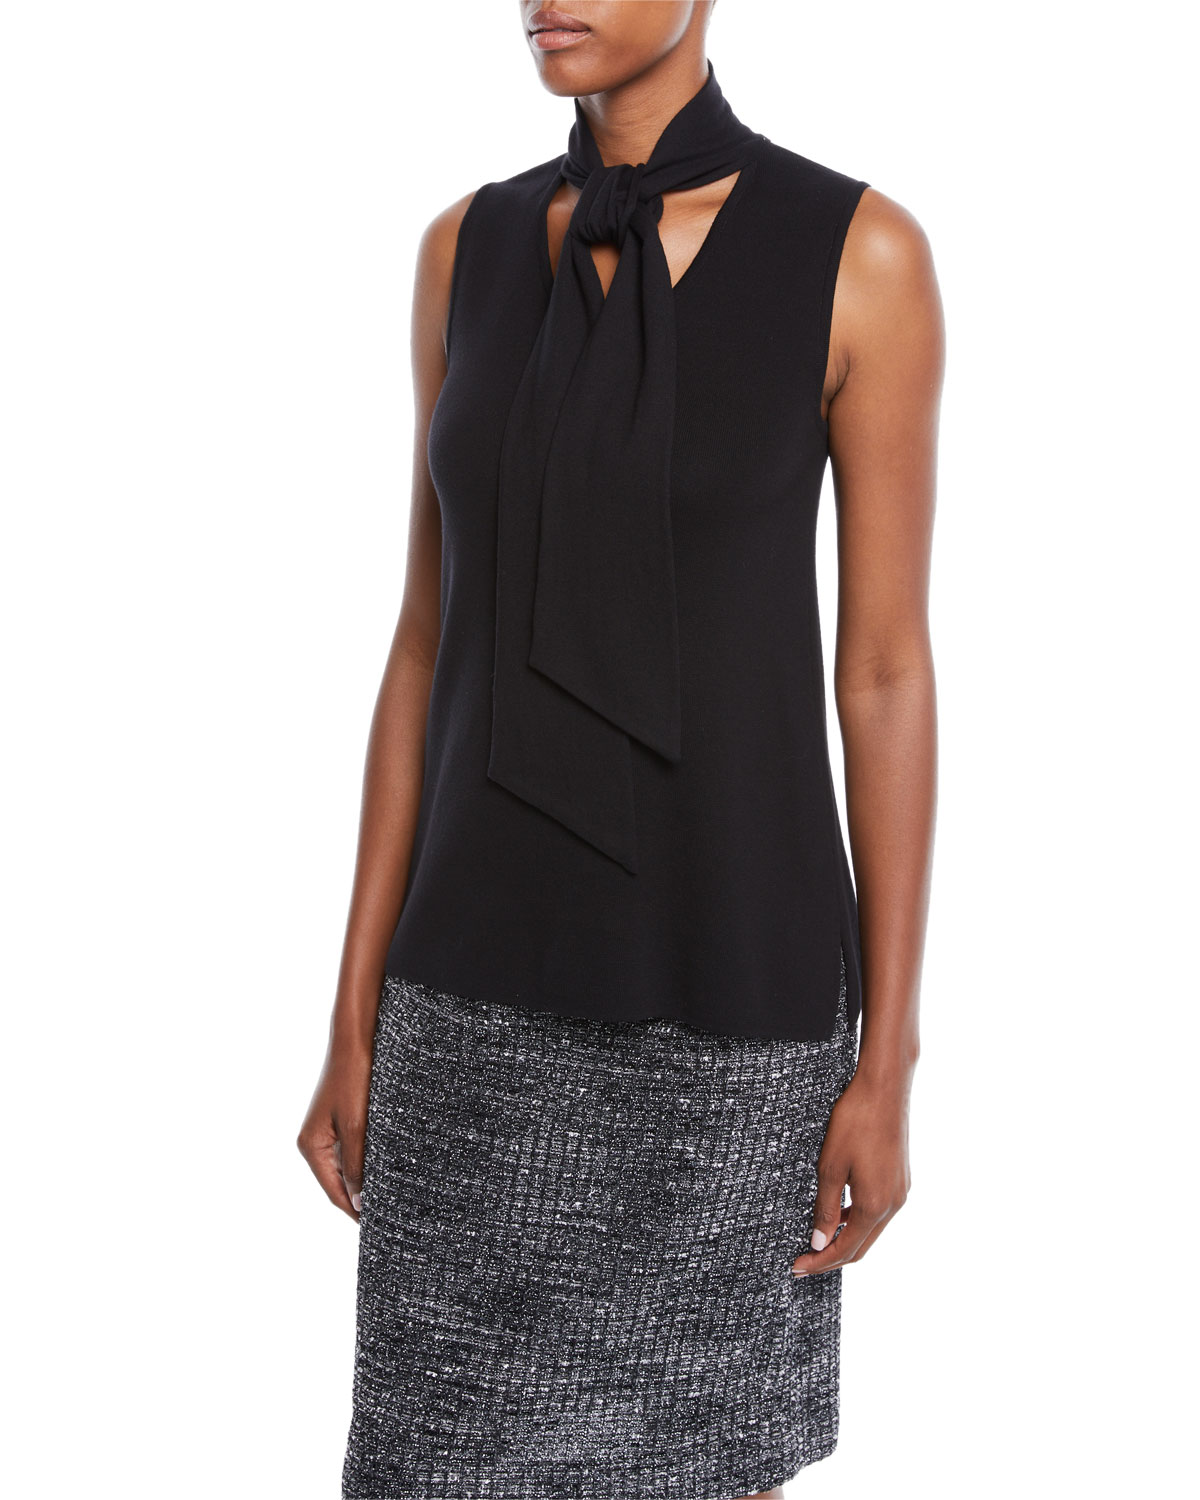 MISOOK SLEEVELESS KNIT TOP W/ TIE DETAIL, PETITE